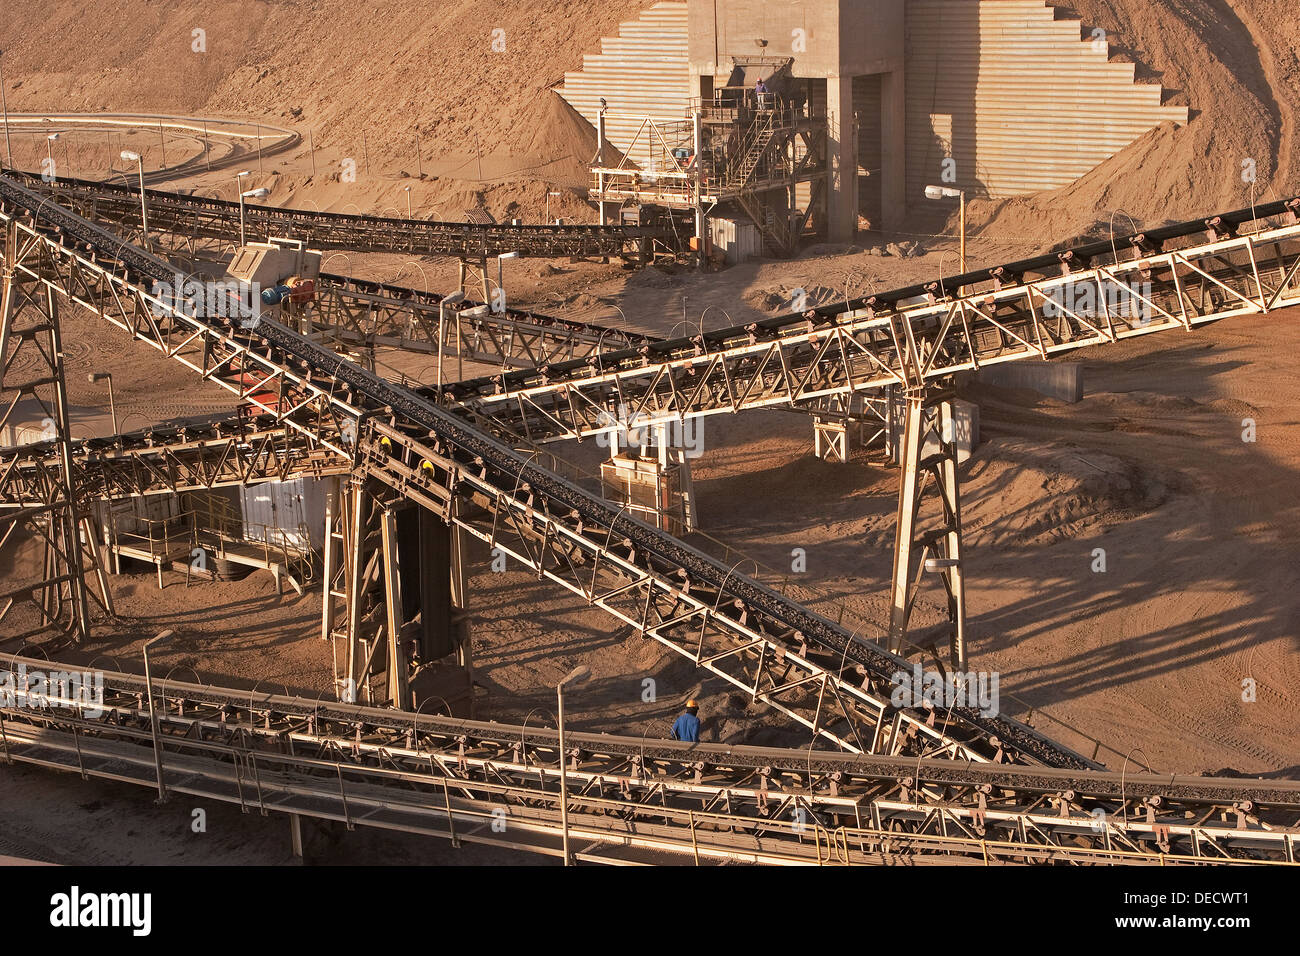 Ore conveyors and crusher on open pit surface gold mine processing plant, Mauritania, NW Africa - Stock Image